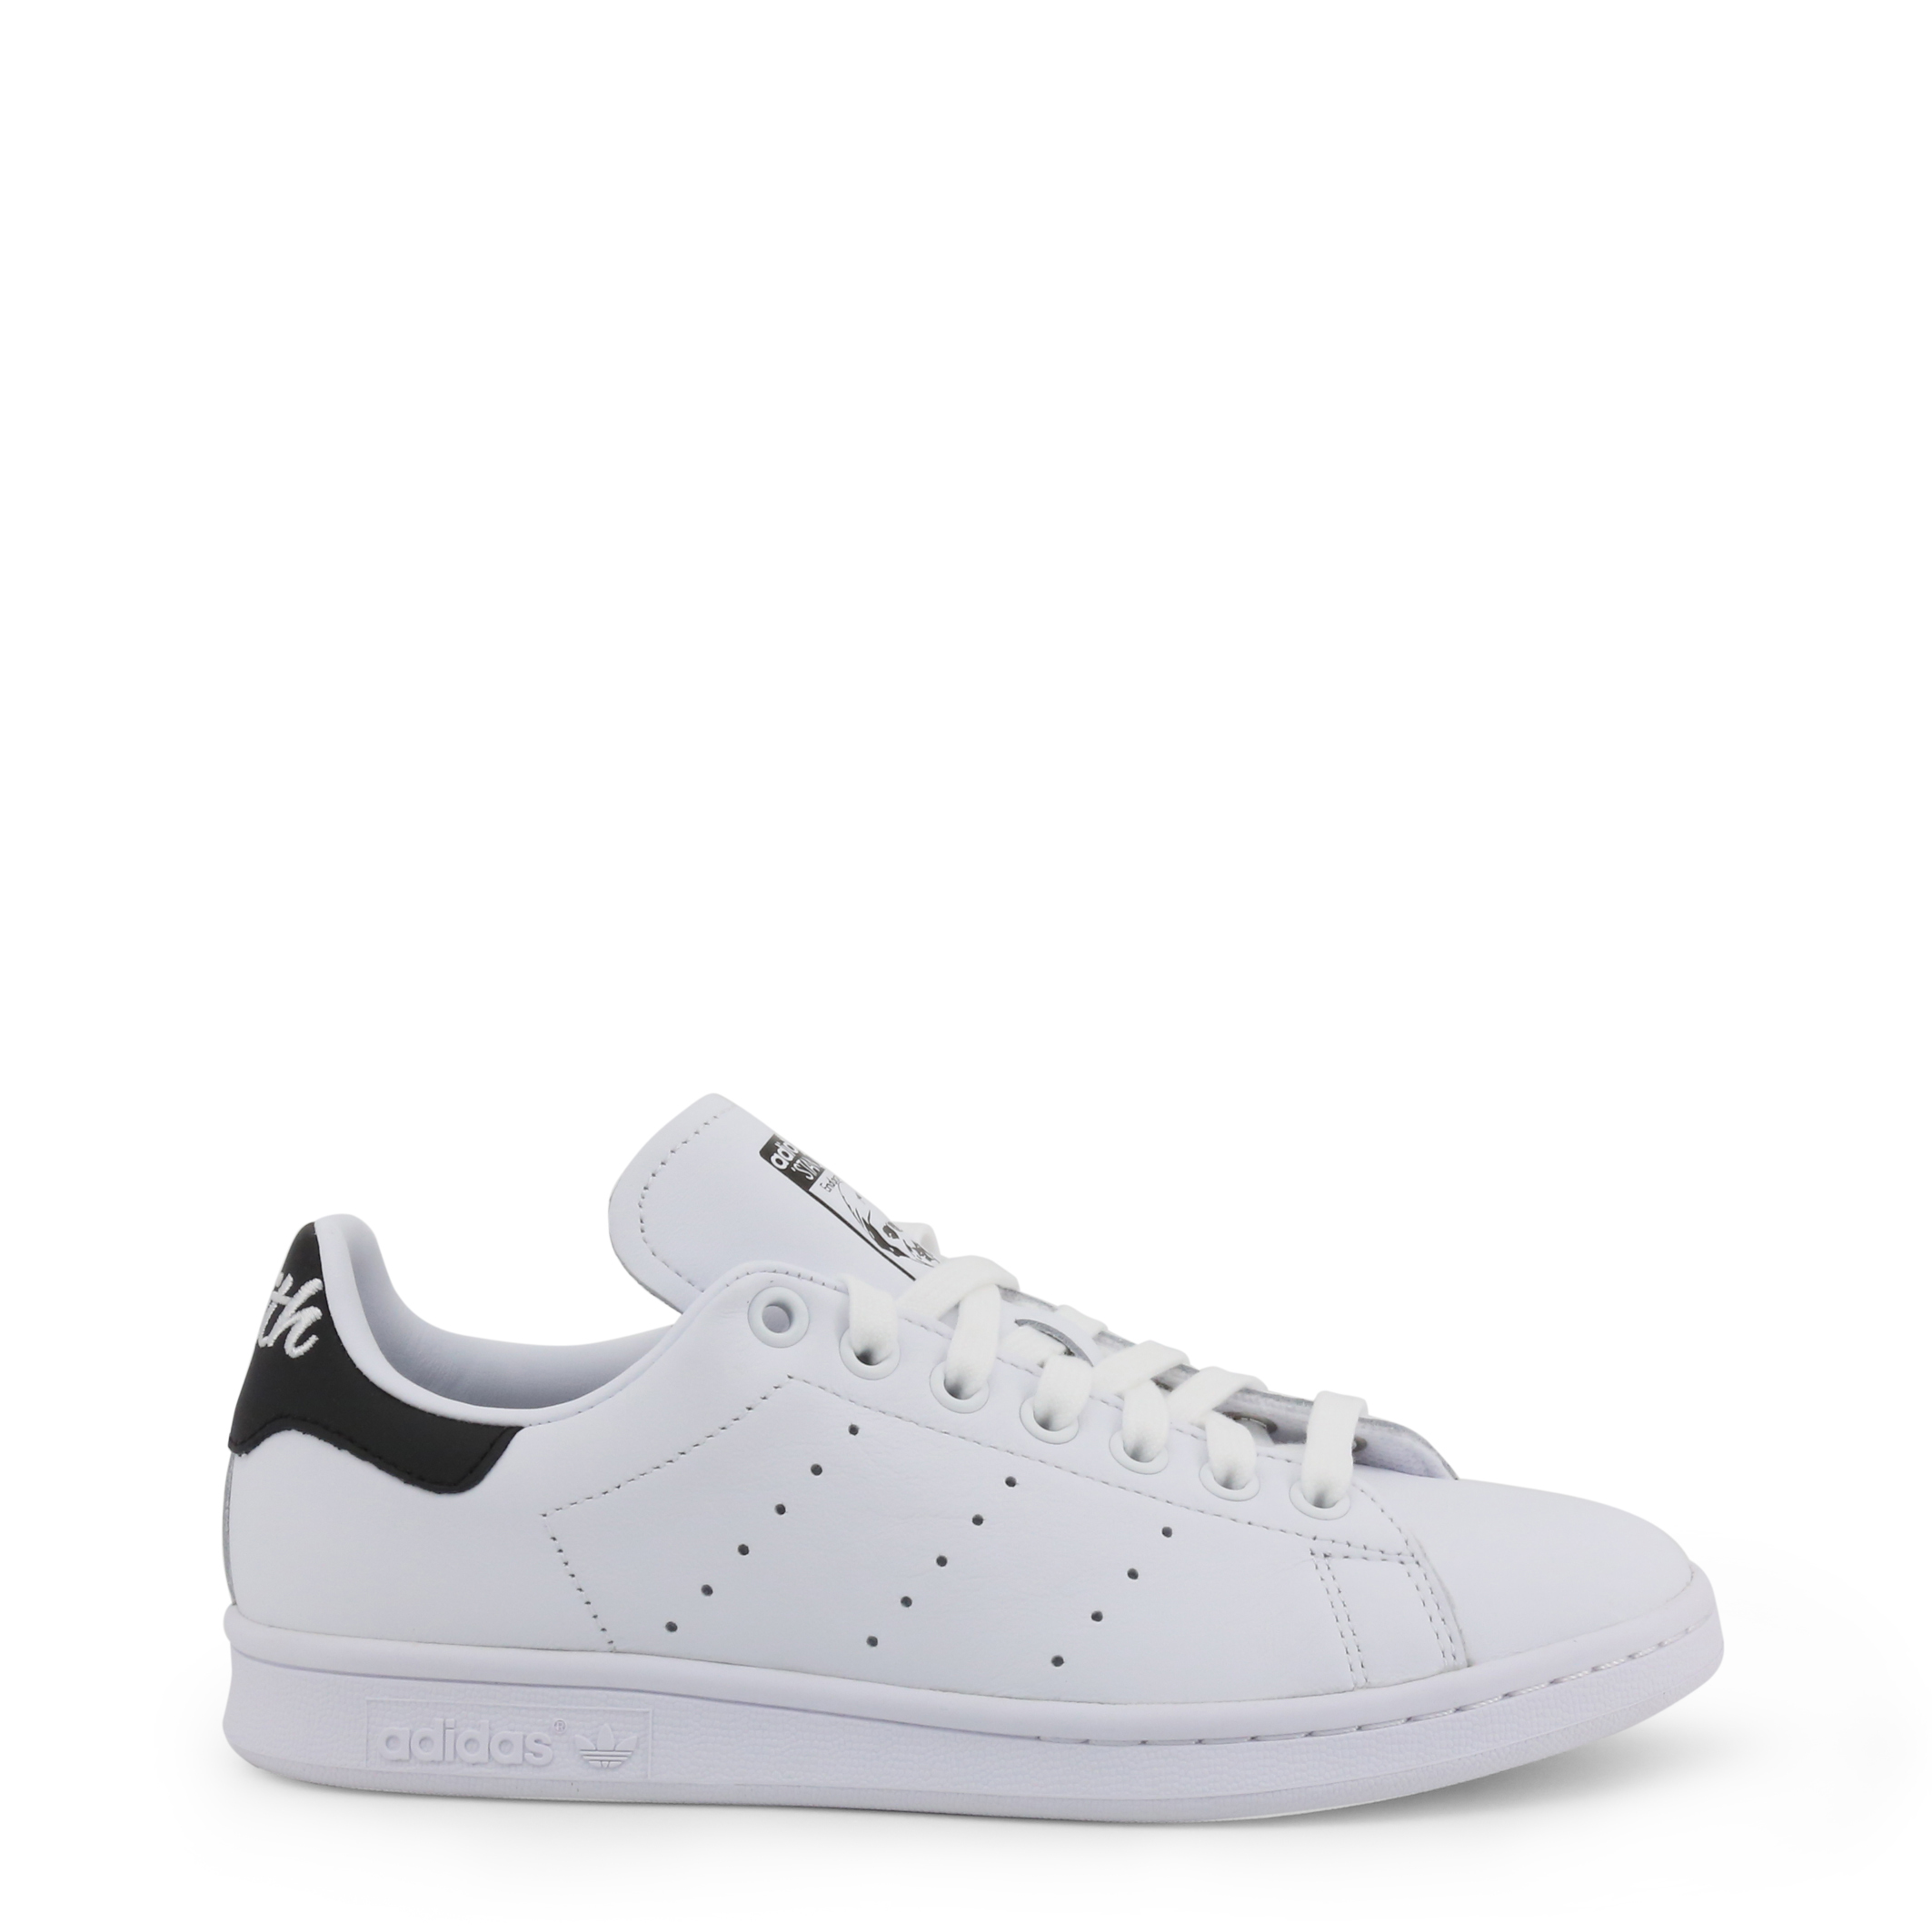 Sneakers Adidas EE5818_StanSmith Noir et blanc